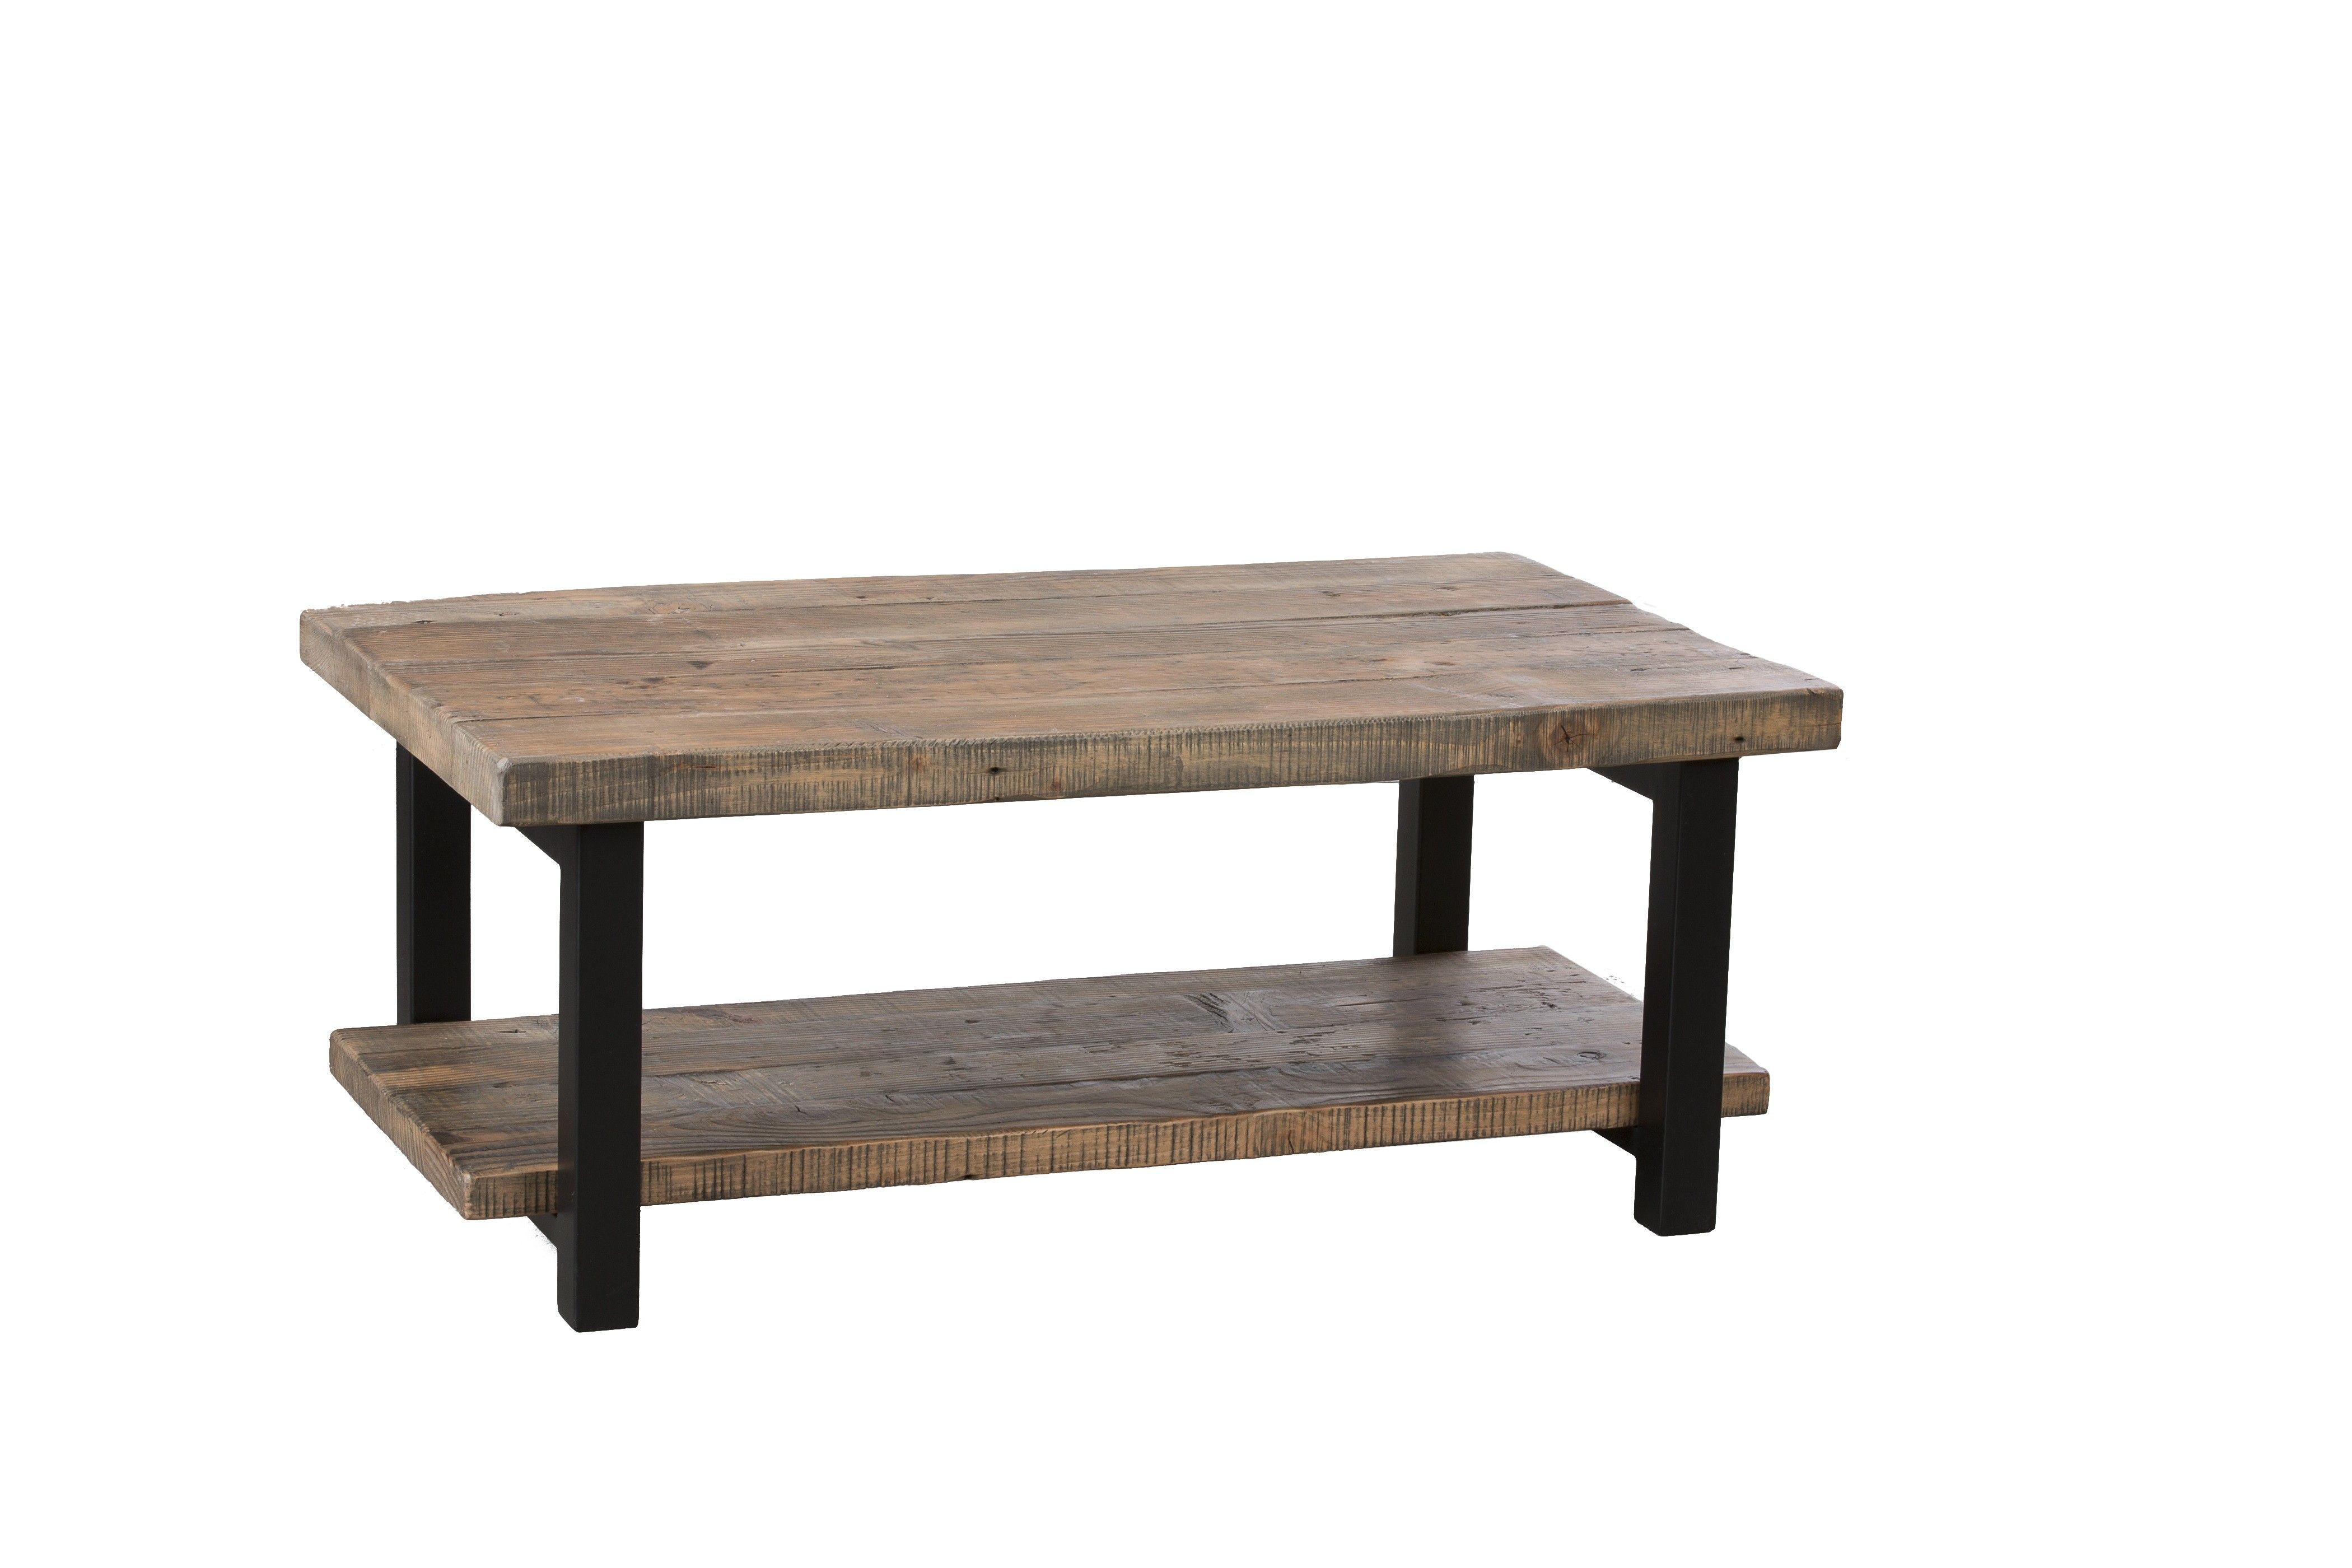 Bolton furniture inc pomona 42 metal and solid wood